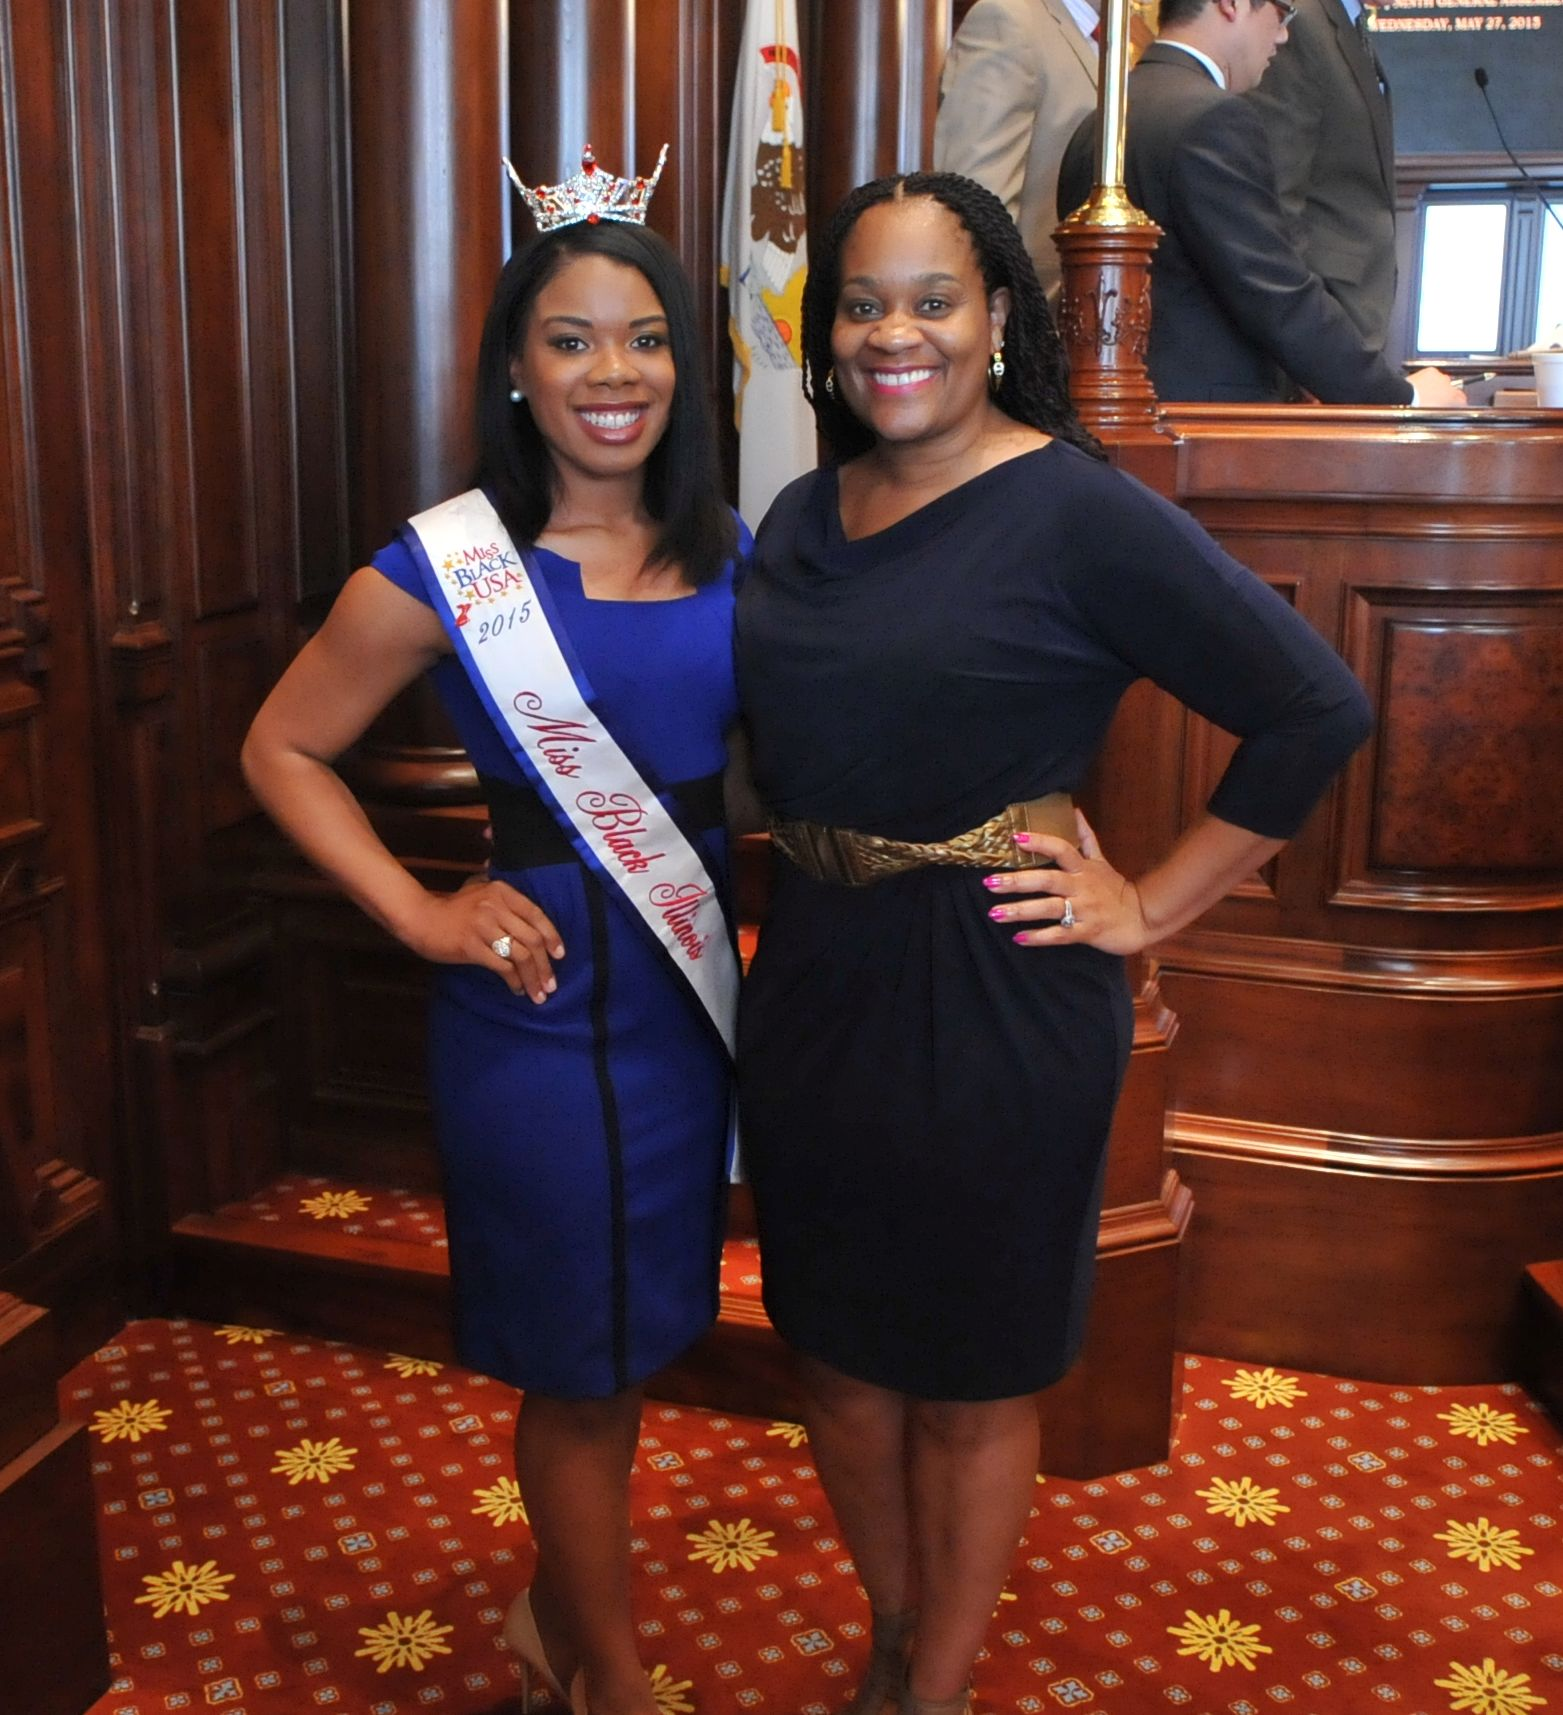 miss black usa 2015 May 2016  Kade Henderson, Miss Black New York USA 2015 and the pageant's curator for  the Connecticut division says she is extremely excited and .